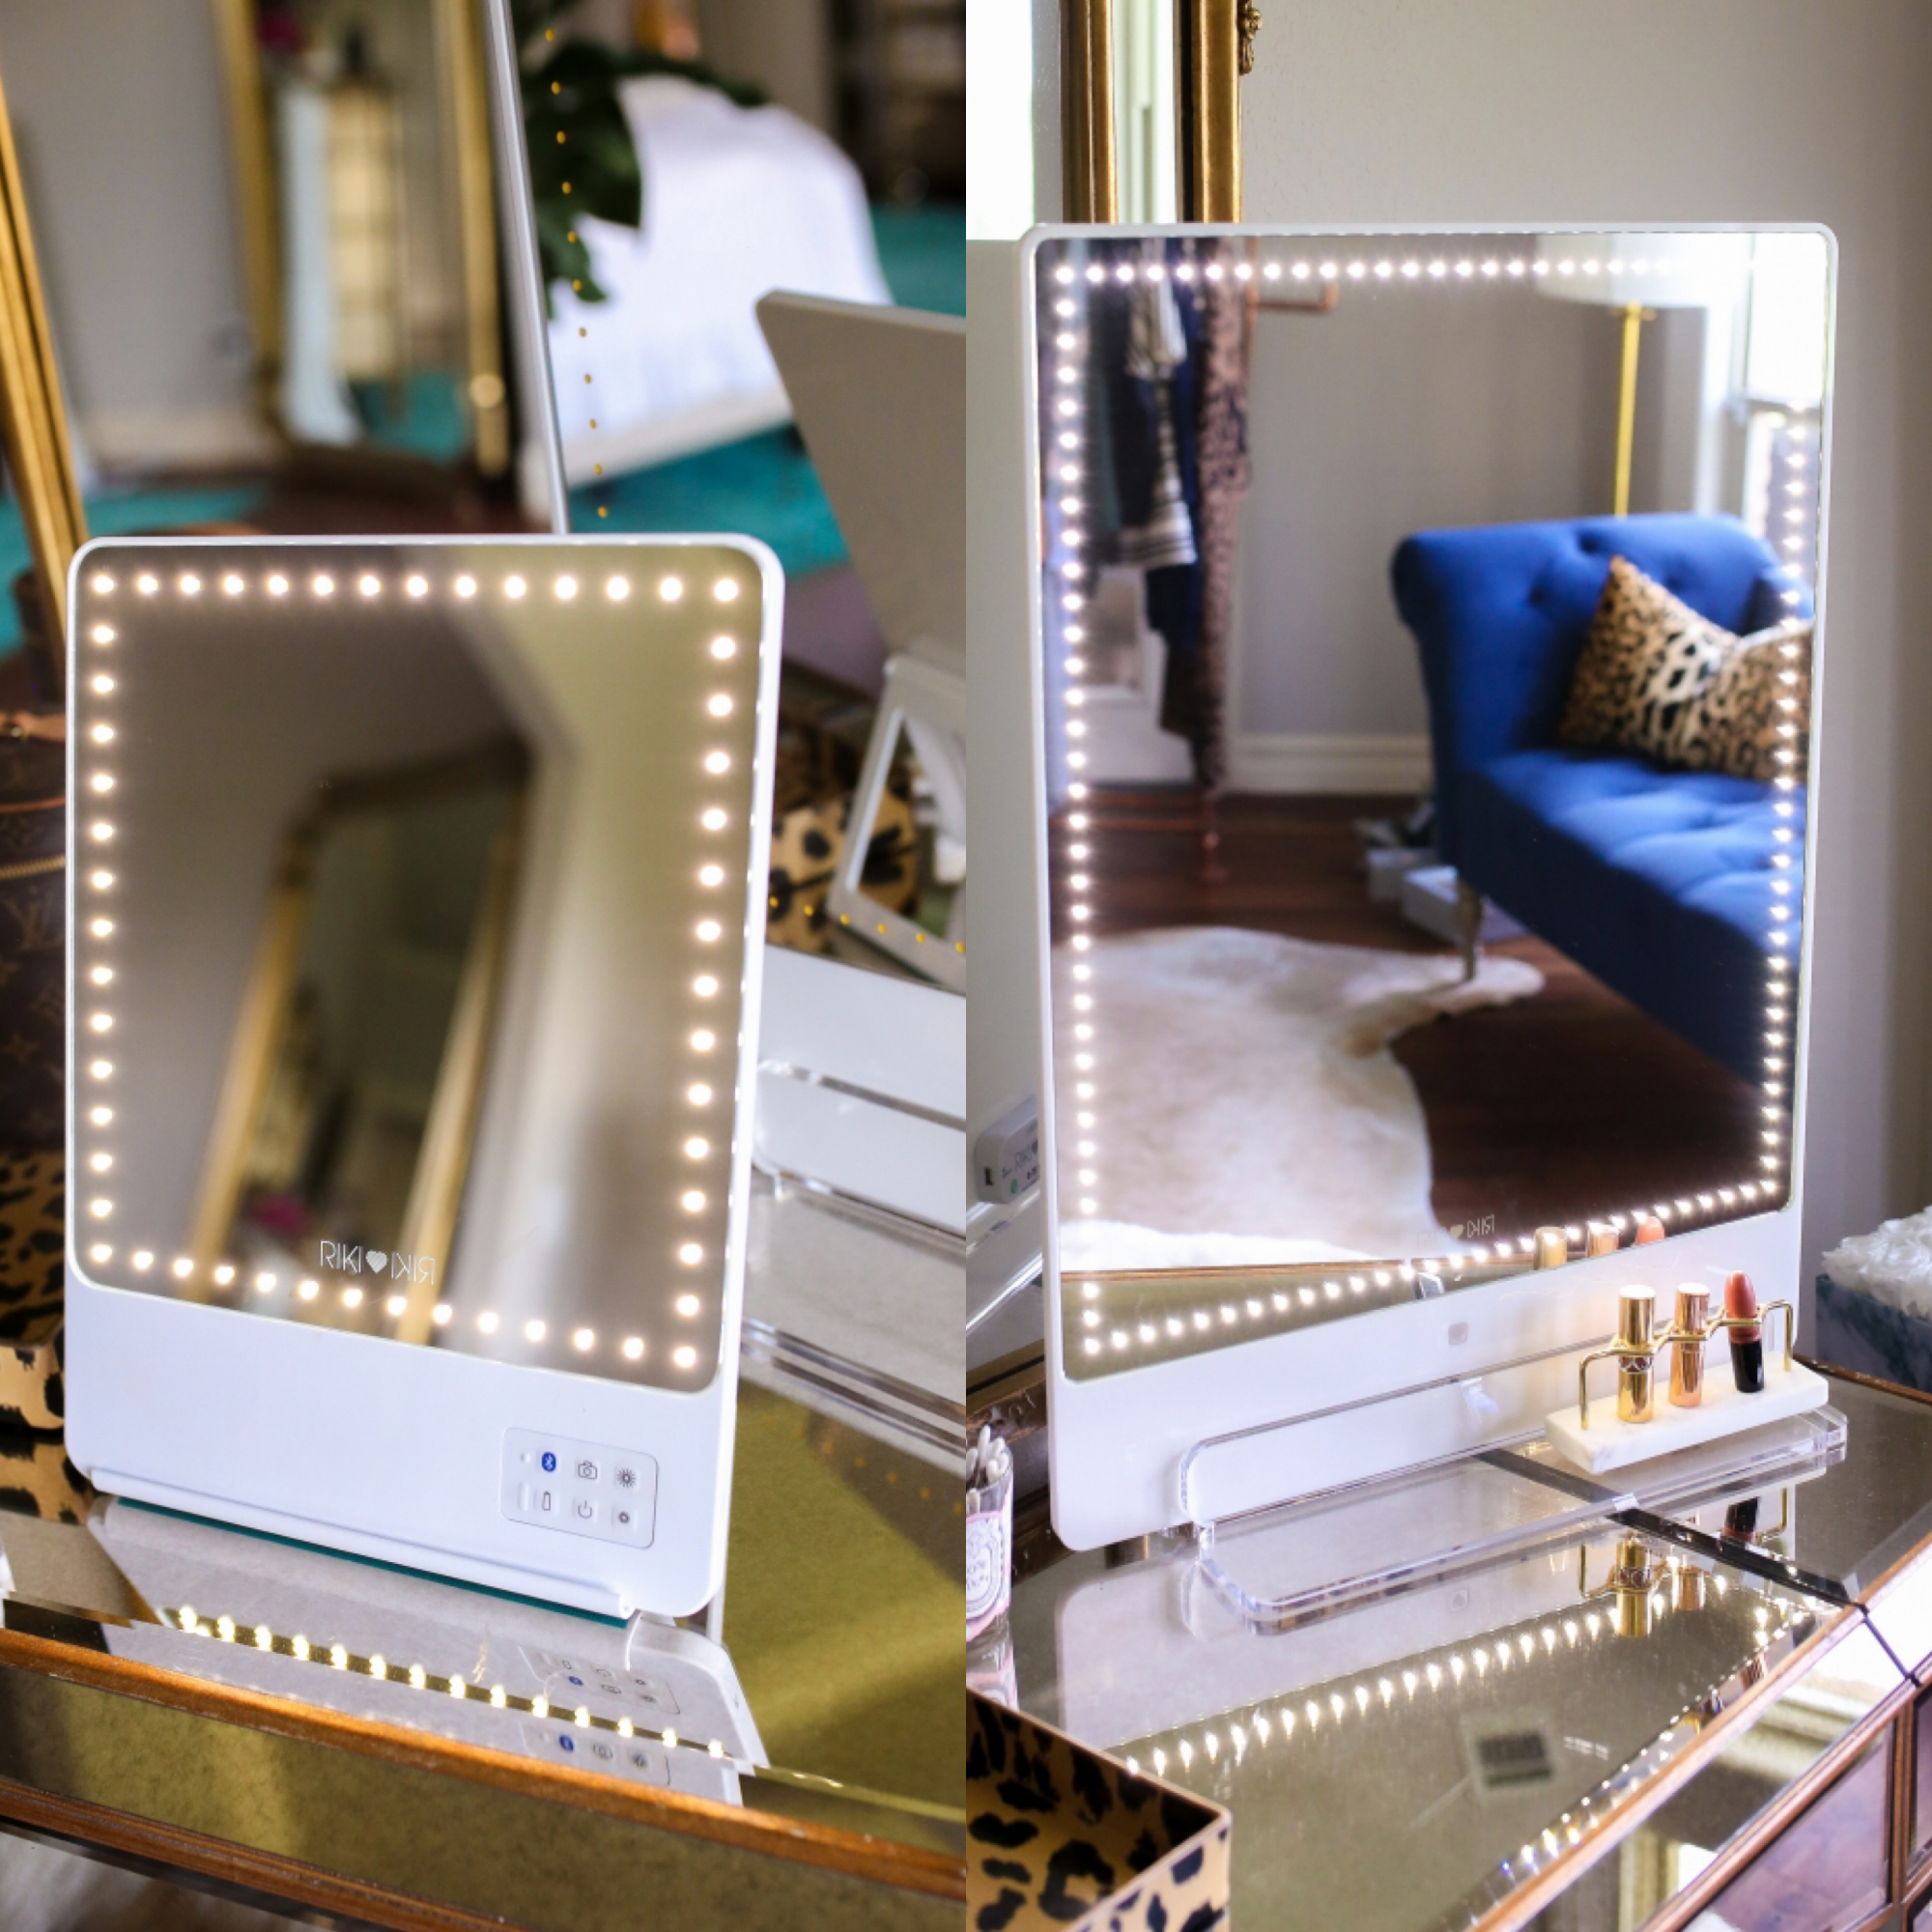 Mega Black Friday Sales and Deals Guide!! by popular Oklahoma life and style blog, The Sweetest Thing: collage image of Riki mirrors